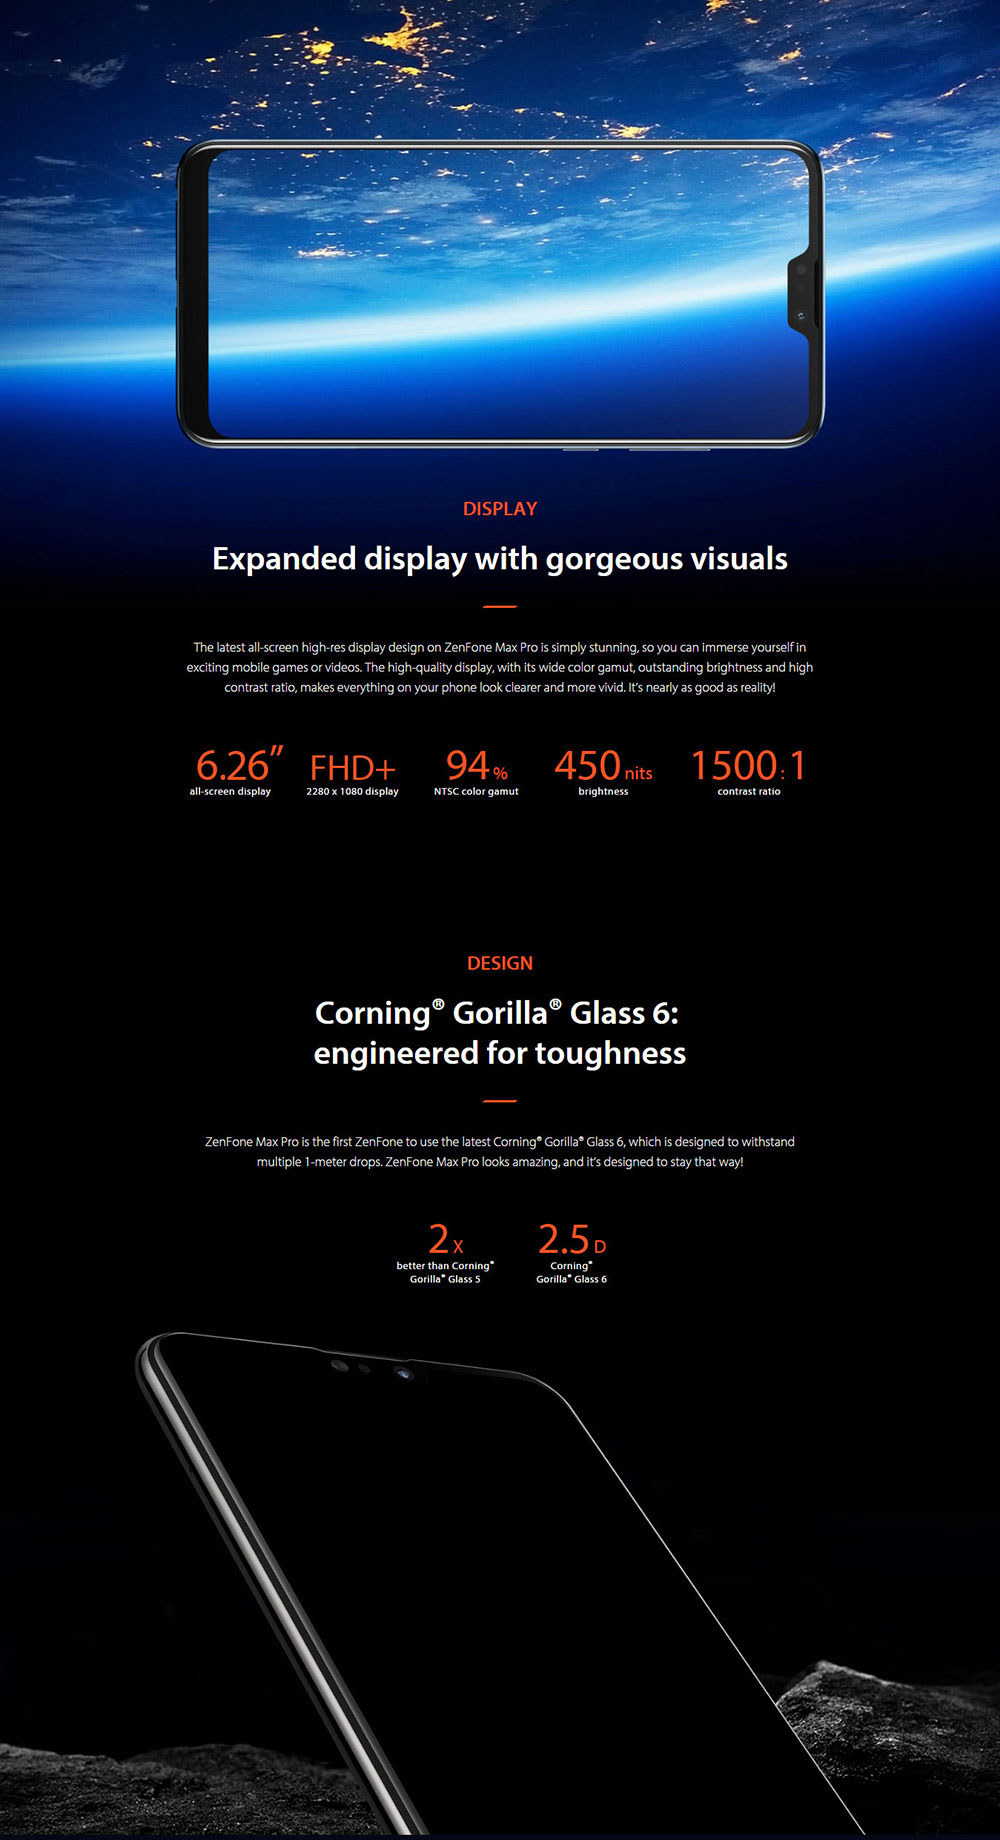 ASUS ZenFone Max Pro ( M2 ) 4G Phablet 6.26 inch Stock Android Oreo Qualcomm Snapdragon 660 Octa Core 2.2GHz 4GB RAM 64GB ROM 12.0MP + 5.0MP Rear Camera Fingerprint Sensor Face ID 5000mAh Built-in - Blue